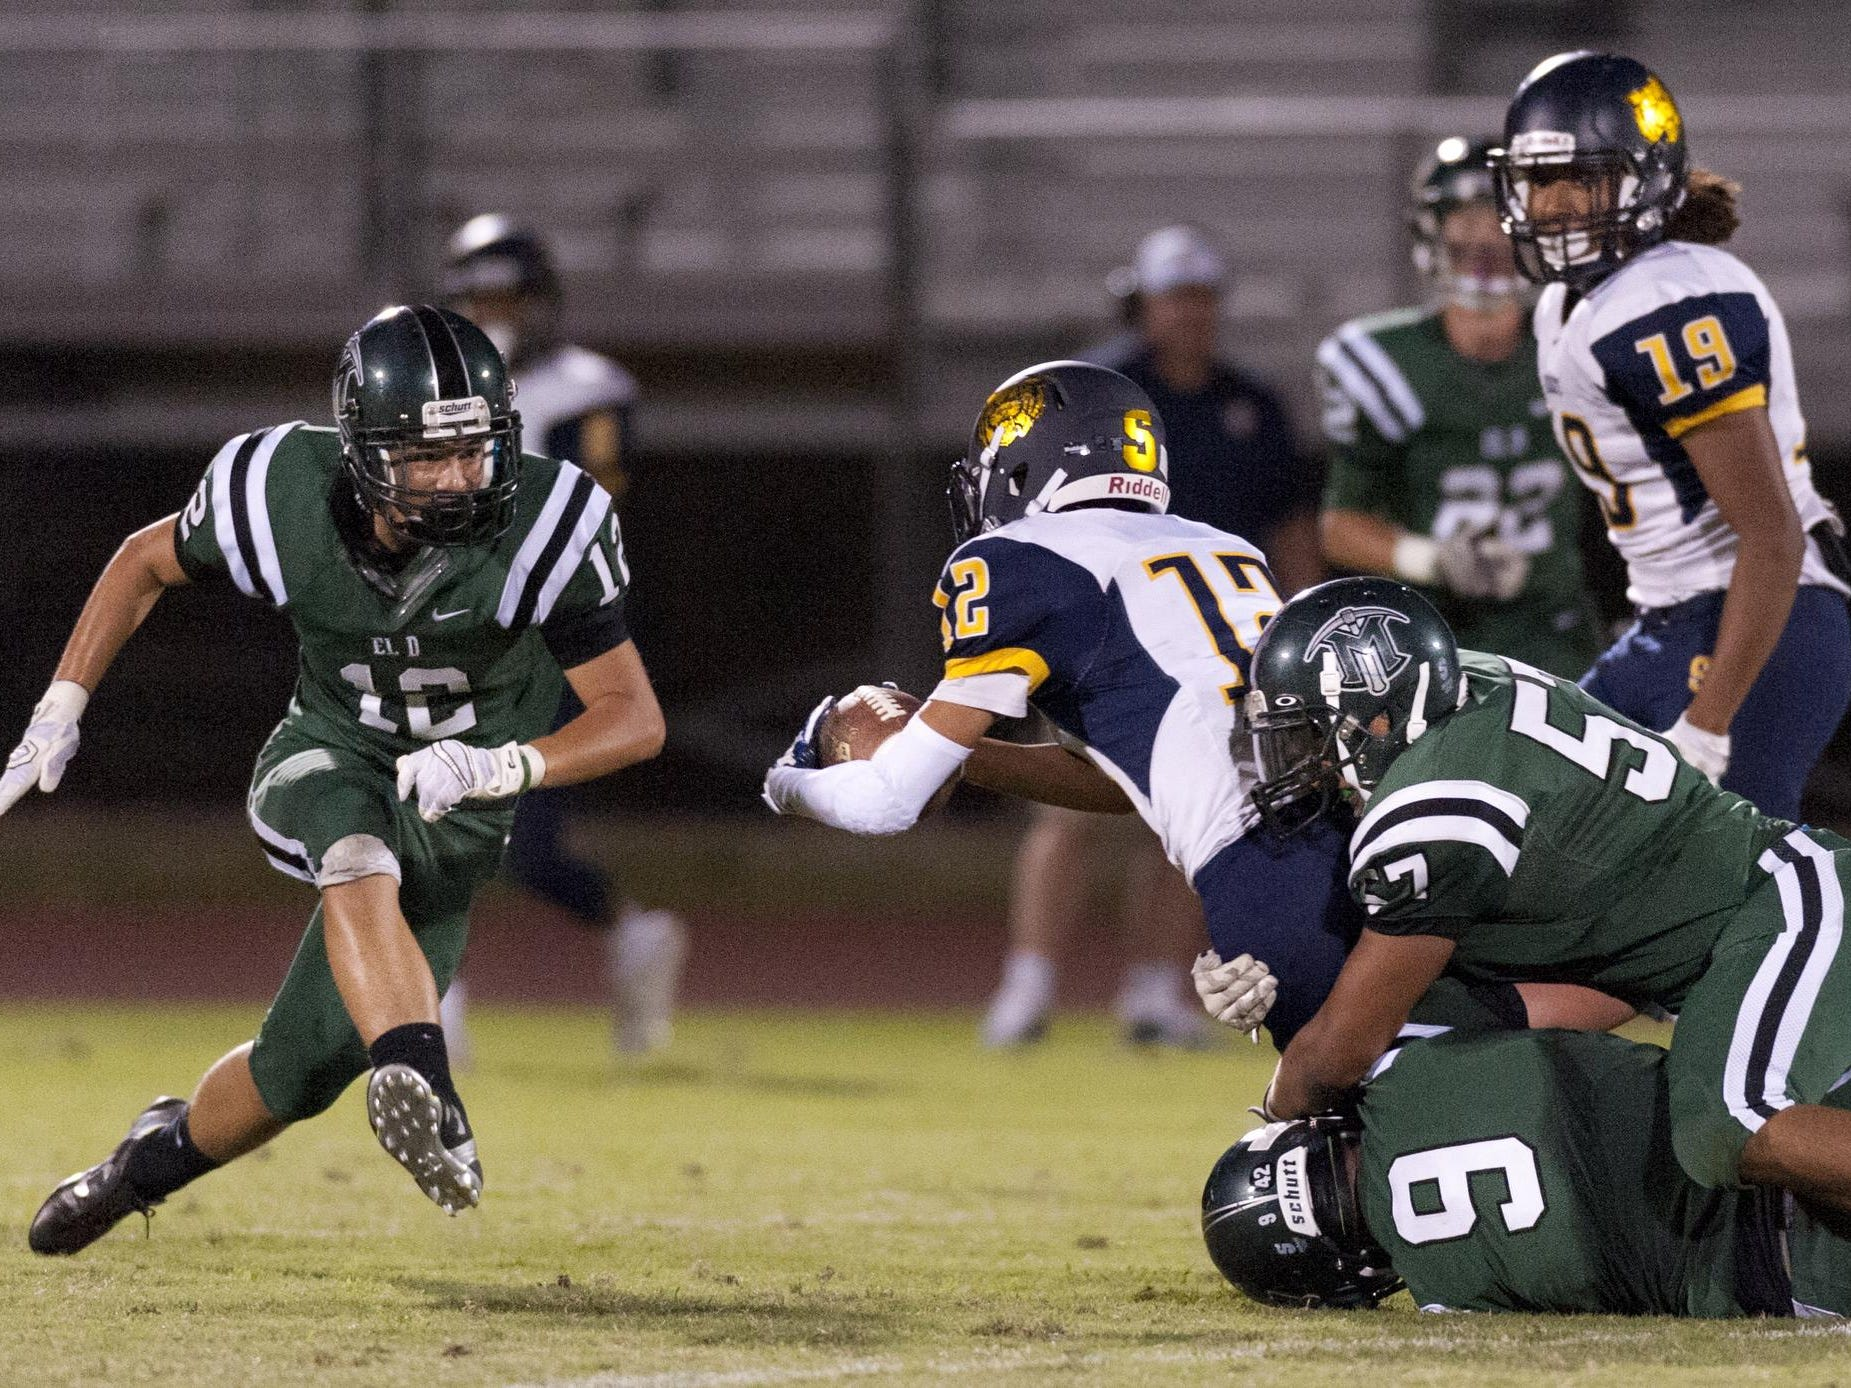 El Diamante's Zach McCorvey rushes to assist Alec Pierce and Gerry Hernandez in taking down Sunnyside's Raymond Hernandez in a Sept. 4 game.